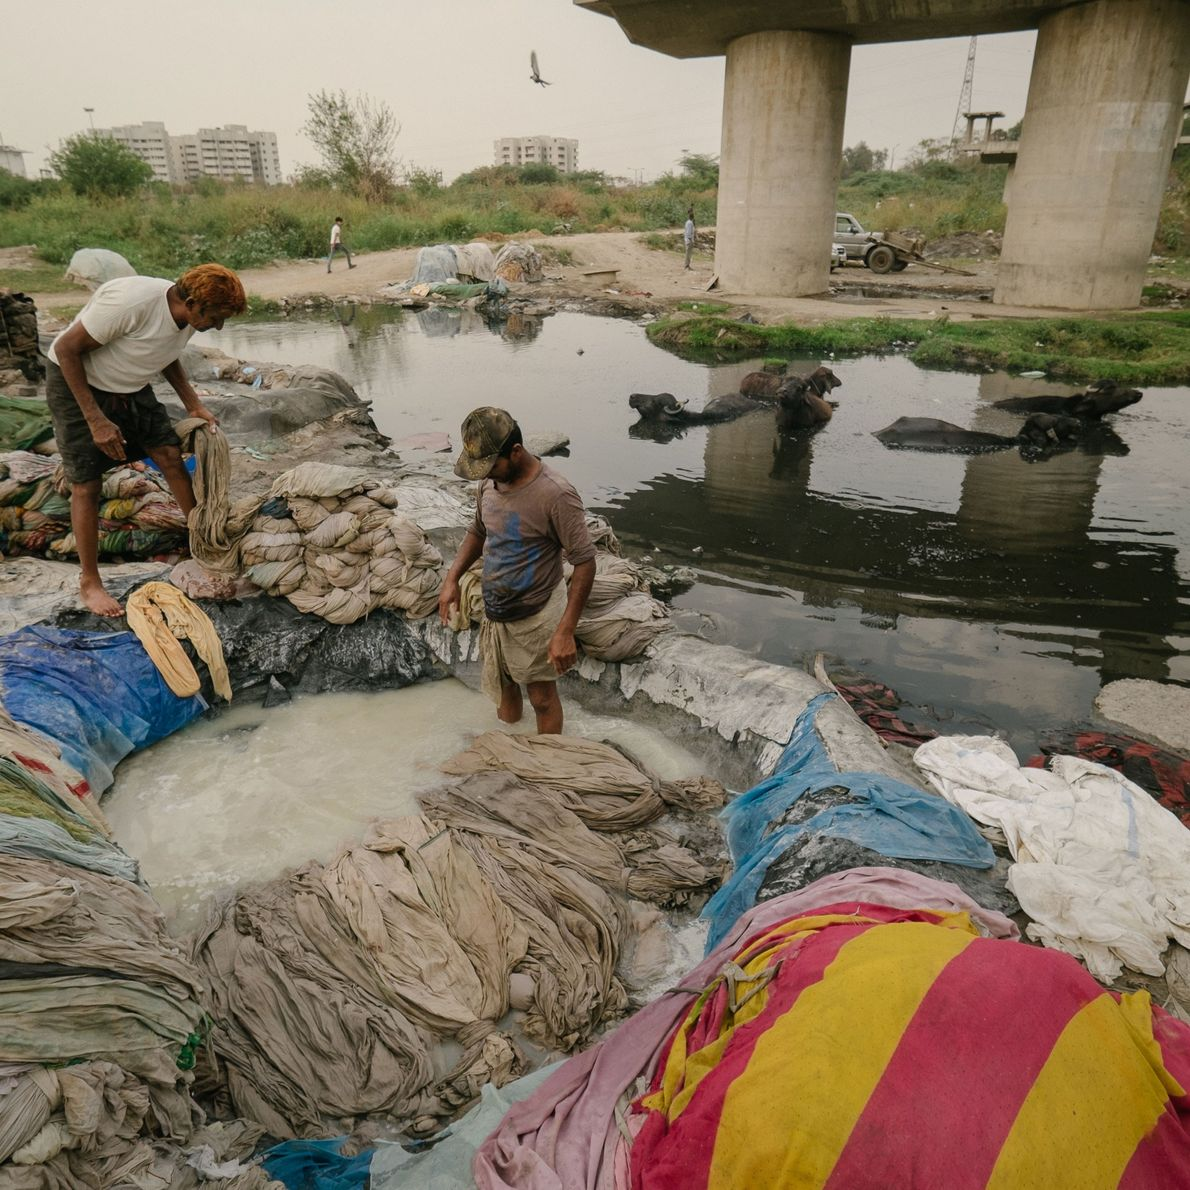 Men bleach laundry before rinsing it in the polluted Yamuna River.